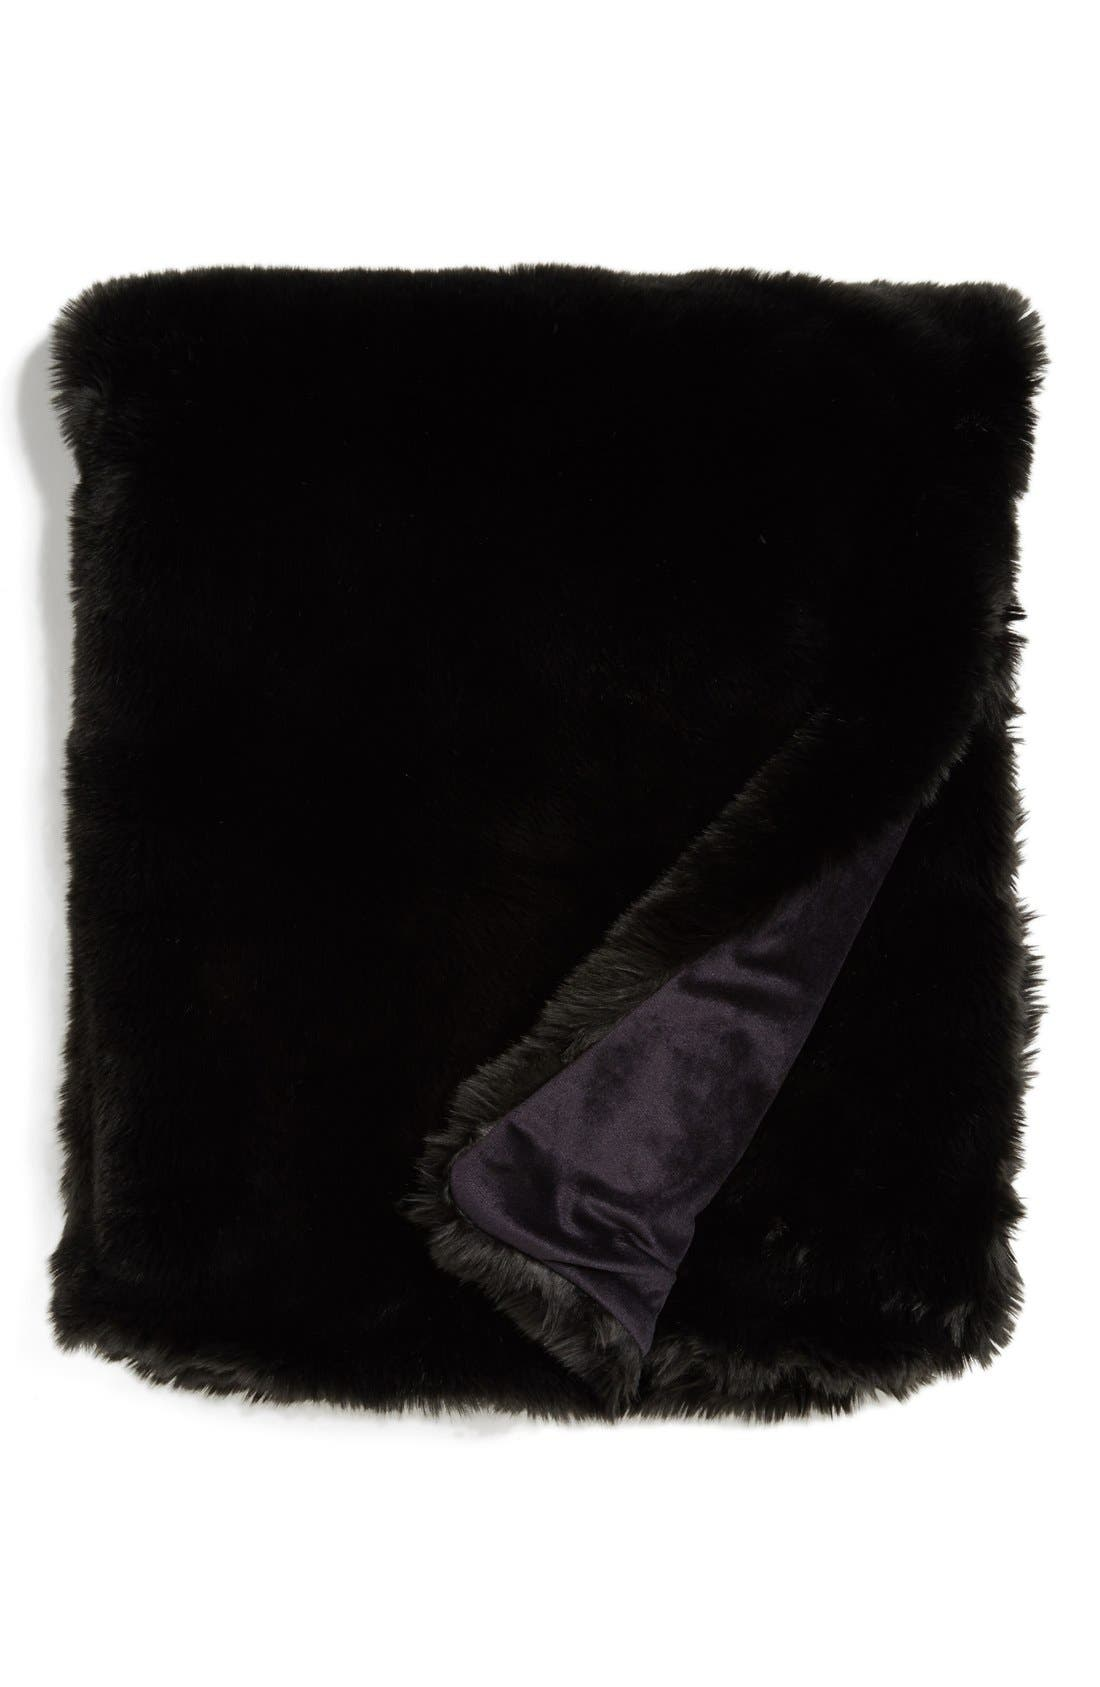 NORDSTROM AT HOME, Faux Fur Throw, Main thumbnail 1, color, 001